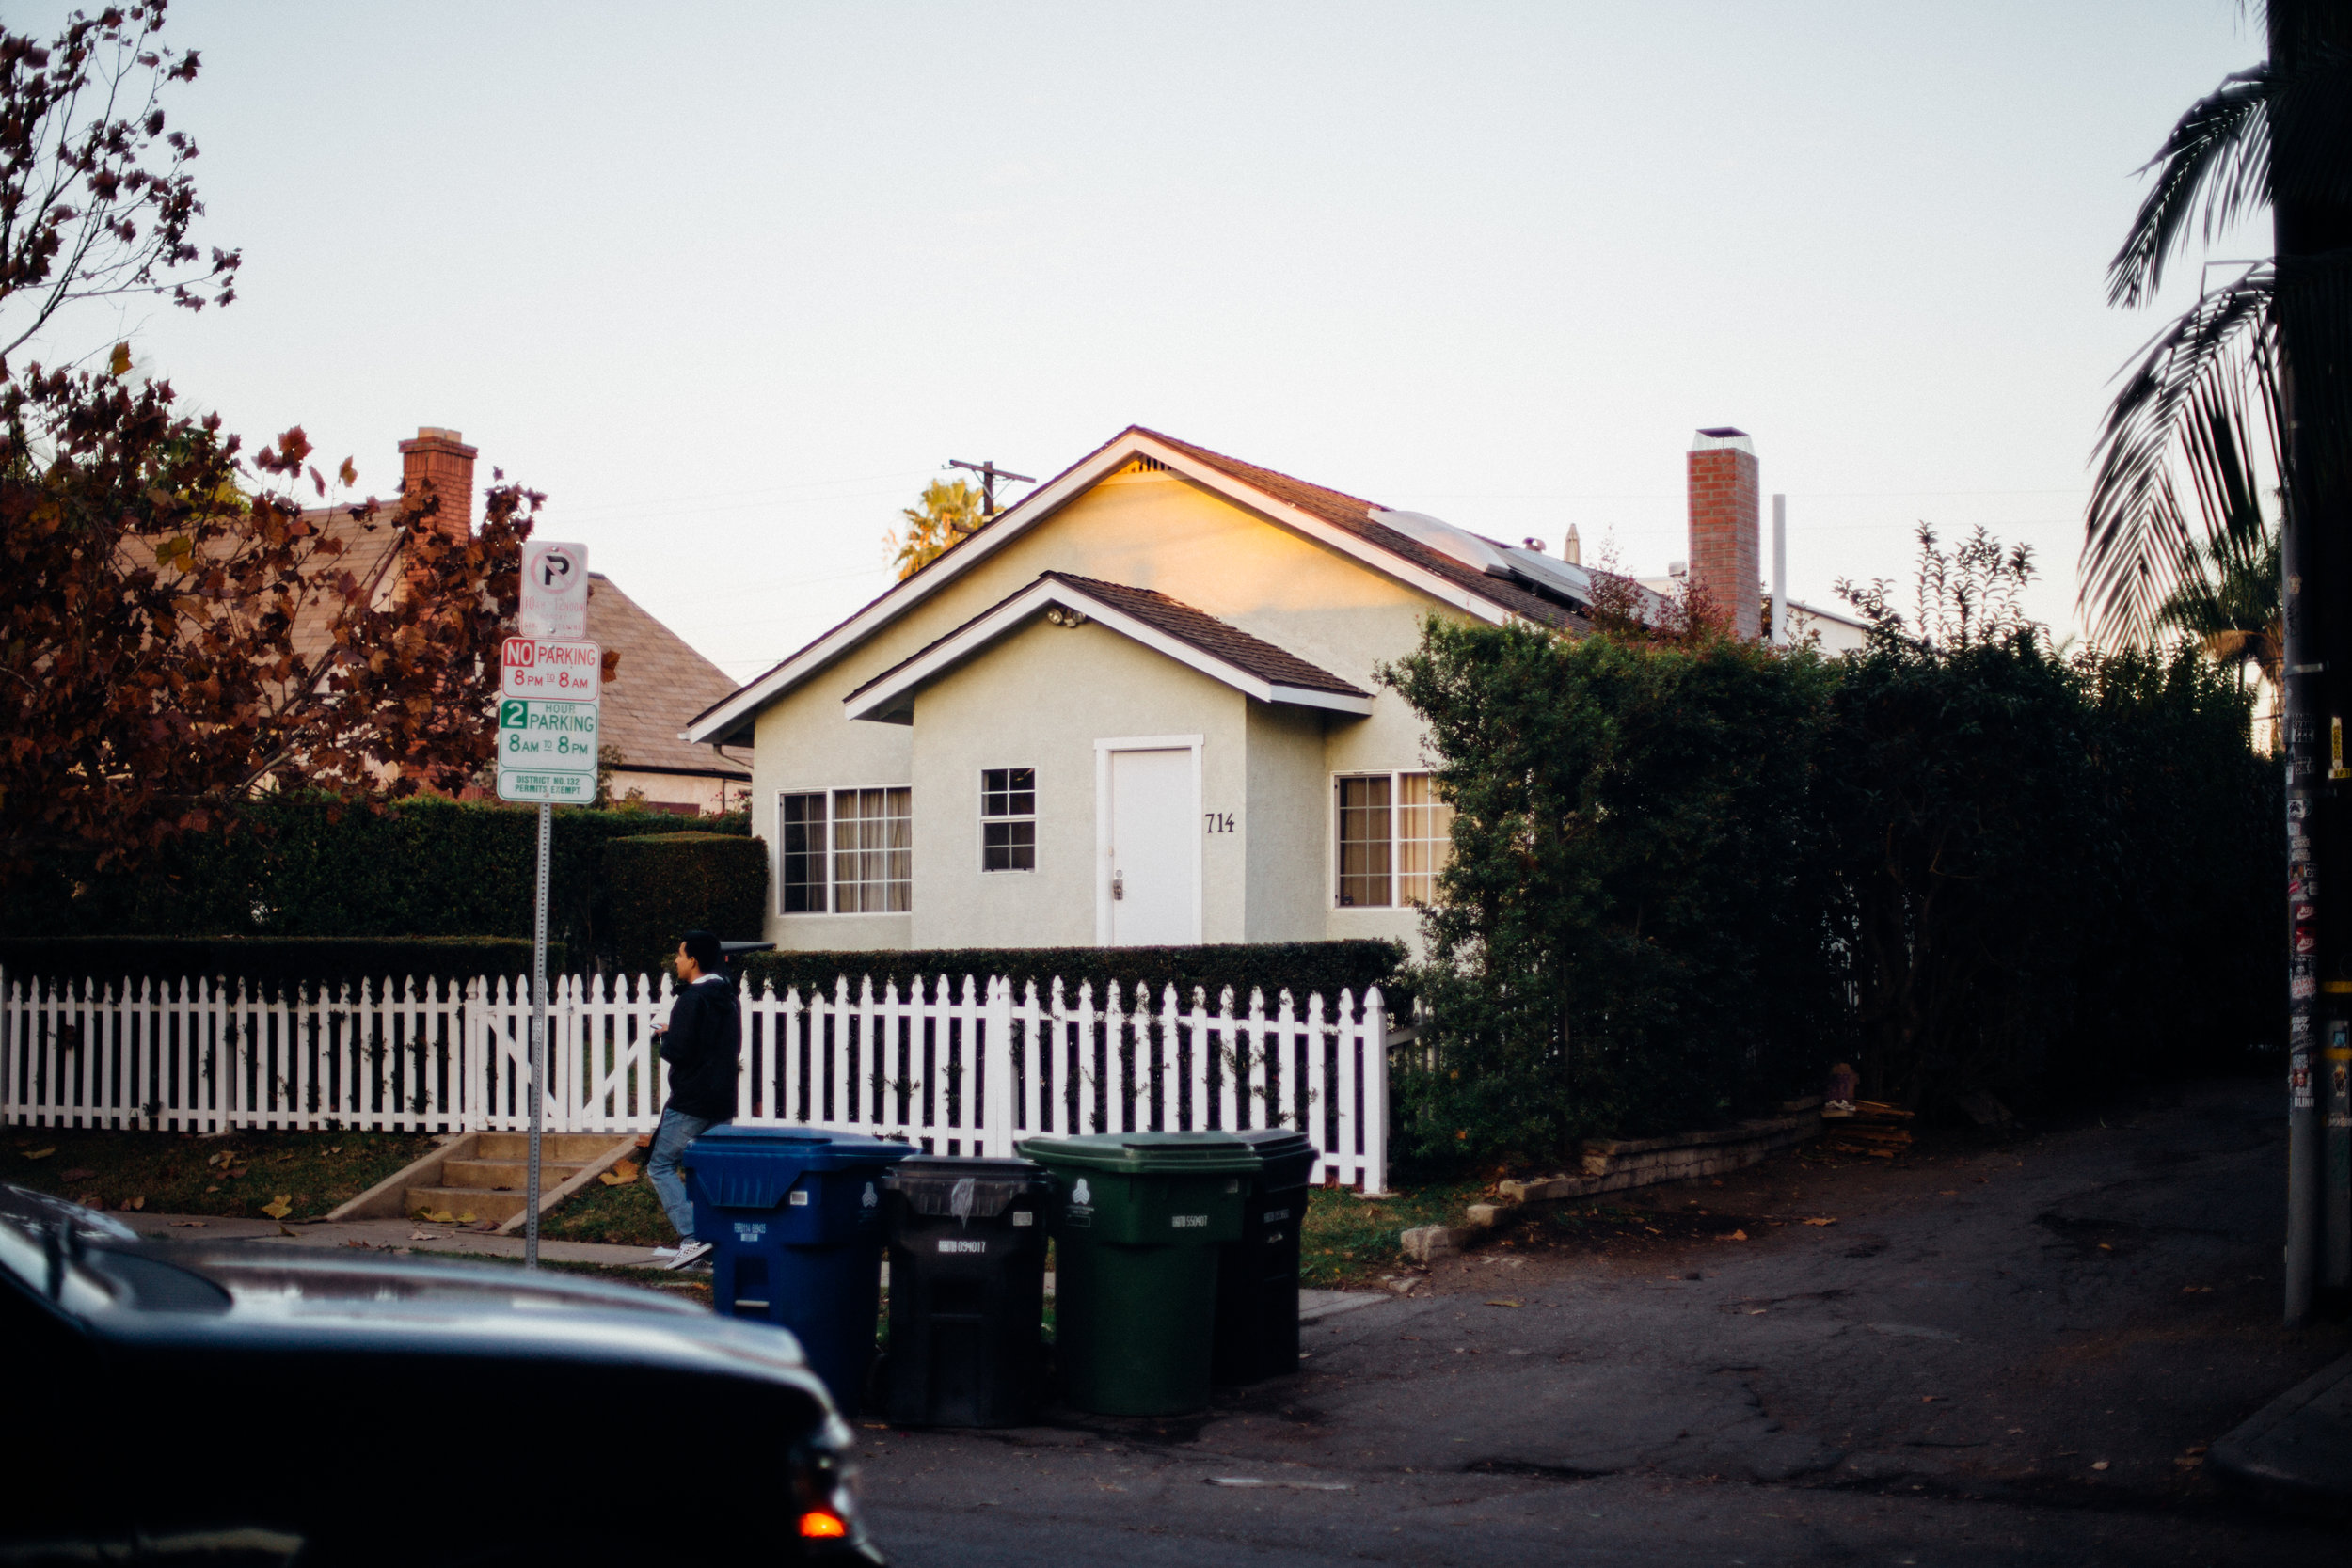 My old house, which was beautiful when I owned it